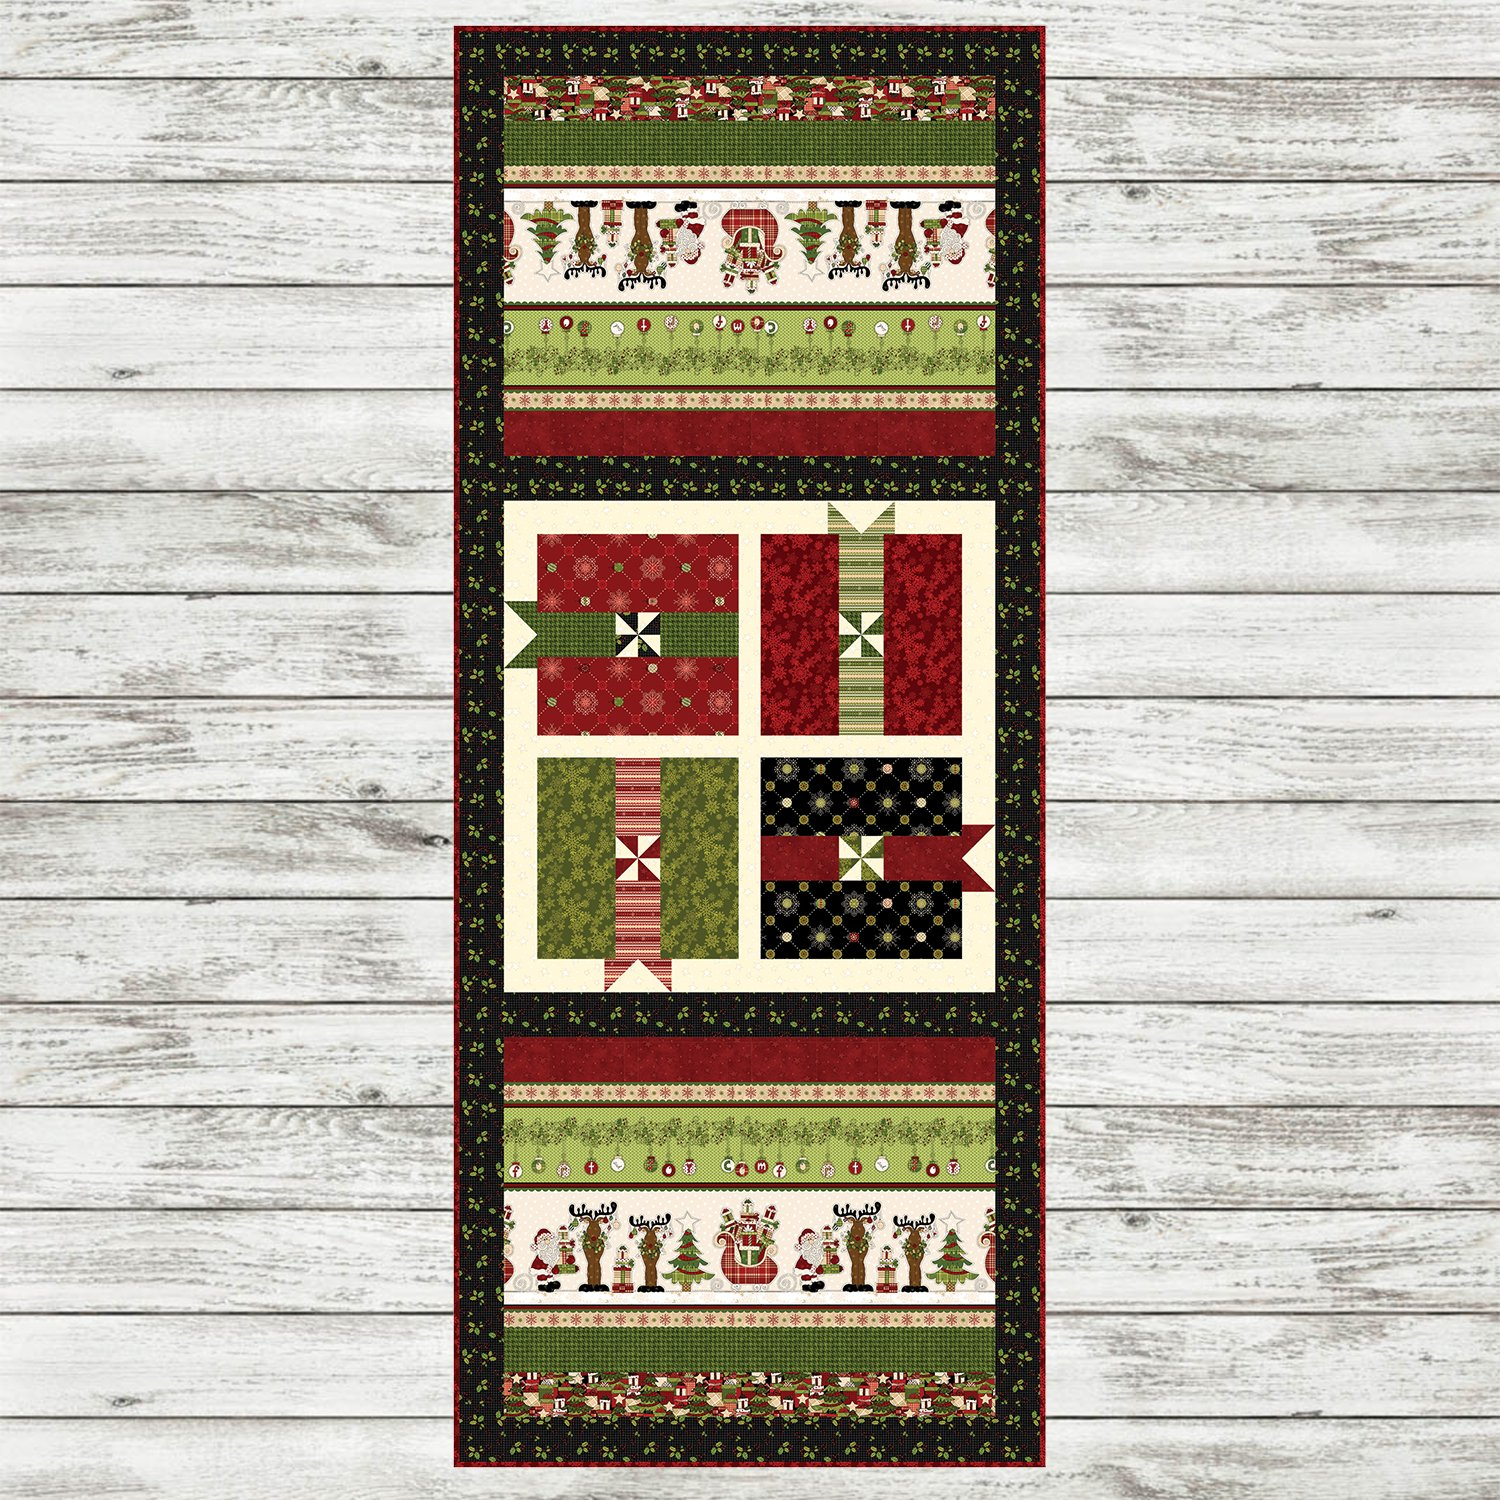 Glad Tidings Table Runner Kit